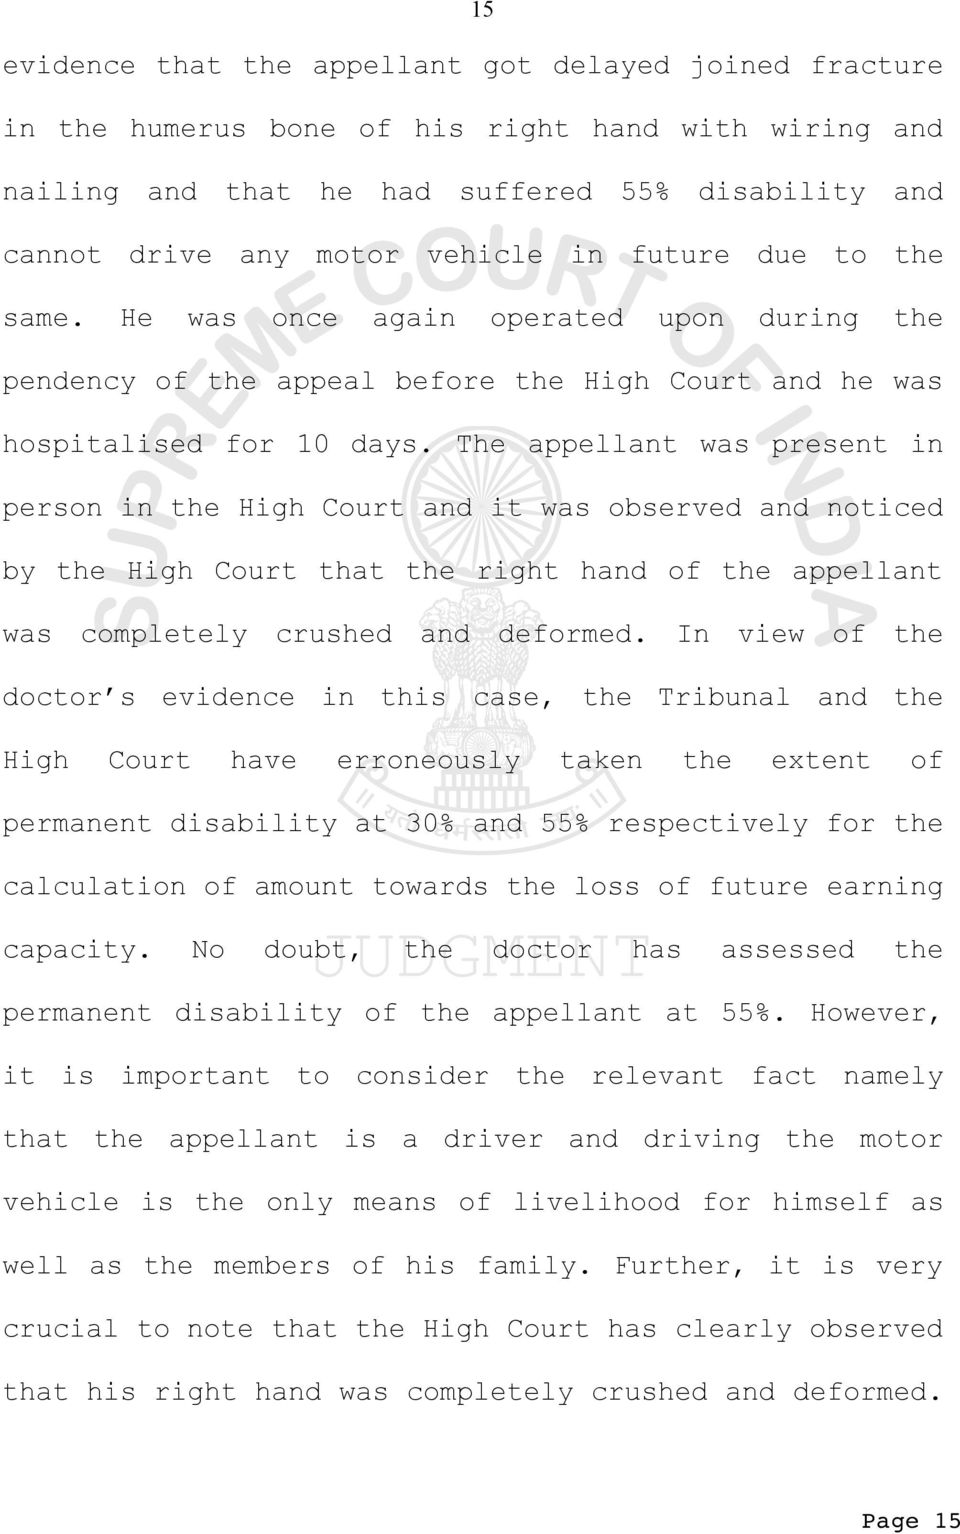 The appellant was present in person in the High Court and it was observed and noticed by the High Court that the right hand of the appellant was completely crushed and deformed.